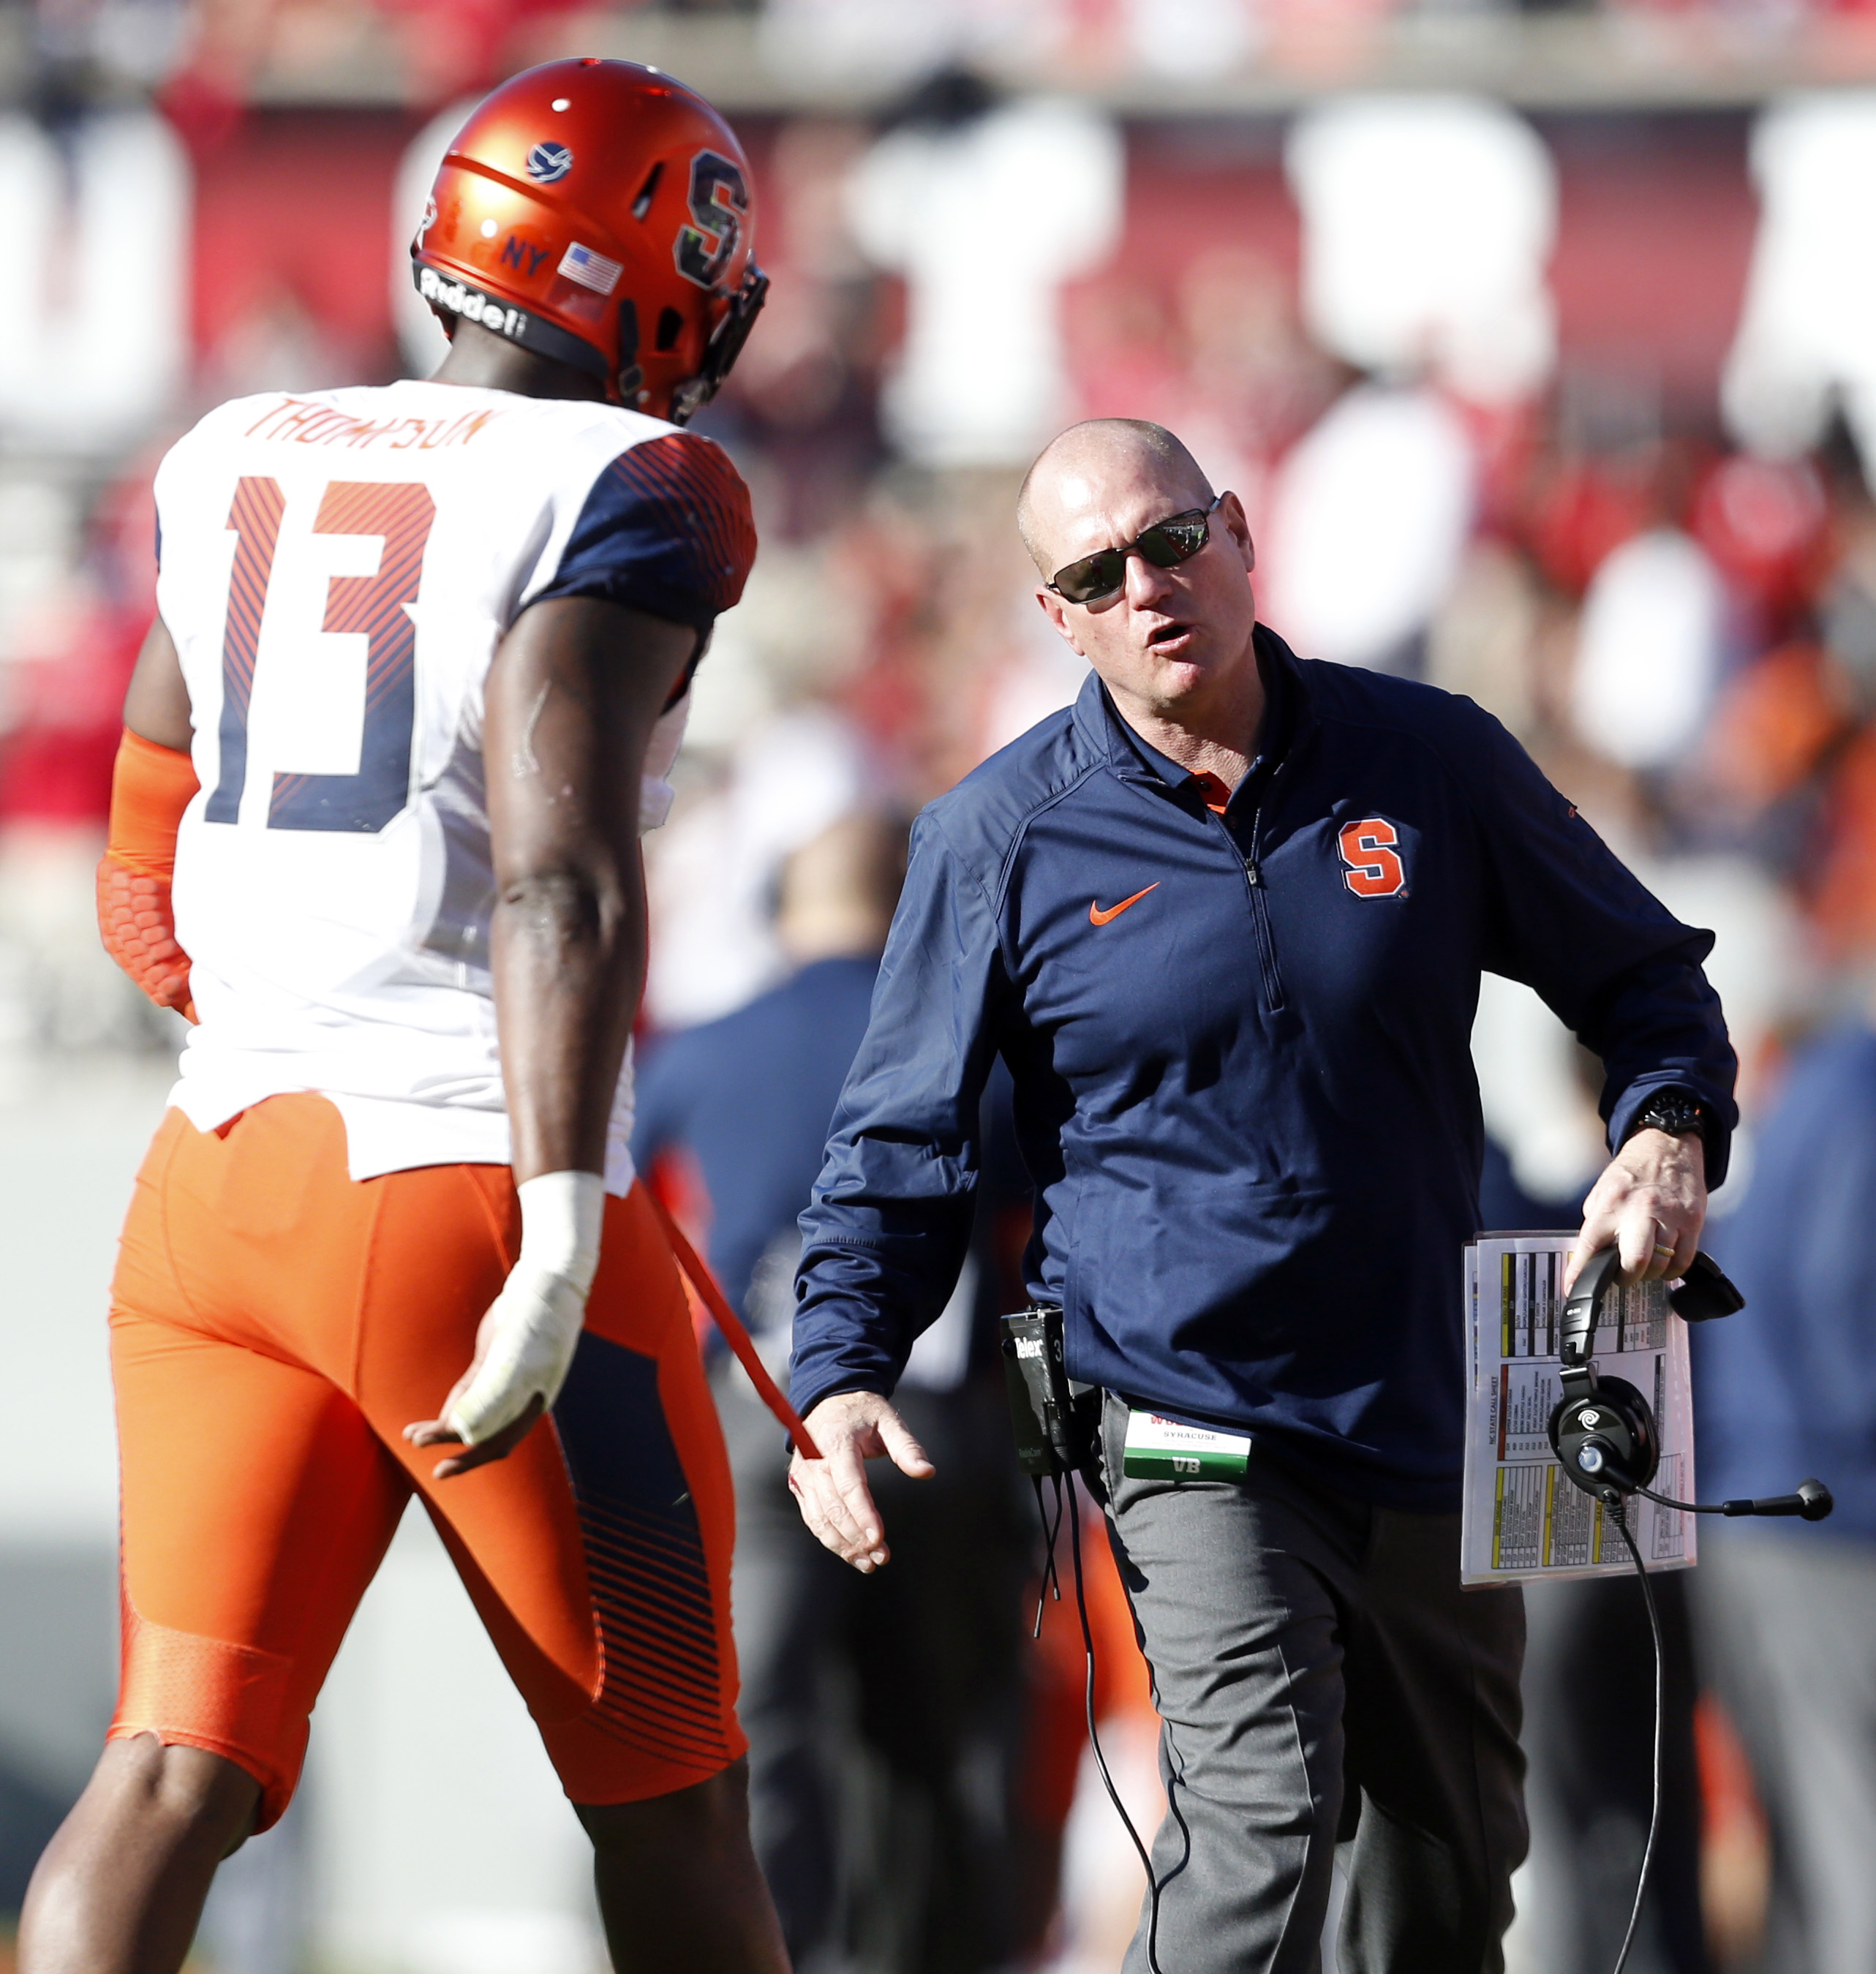 Syracuse head coach Scott Shafer, right, talks to Ron Thompson (13) during the second half of an NCAA college football game against North Carolina State in Raleigh, N.C., Saturday, Nov. 21, 2015. (Ethan Hyman/The News & Observer via AP) MANDATORY CREDIT